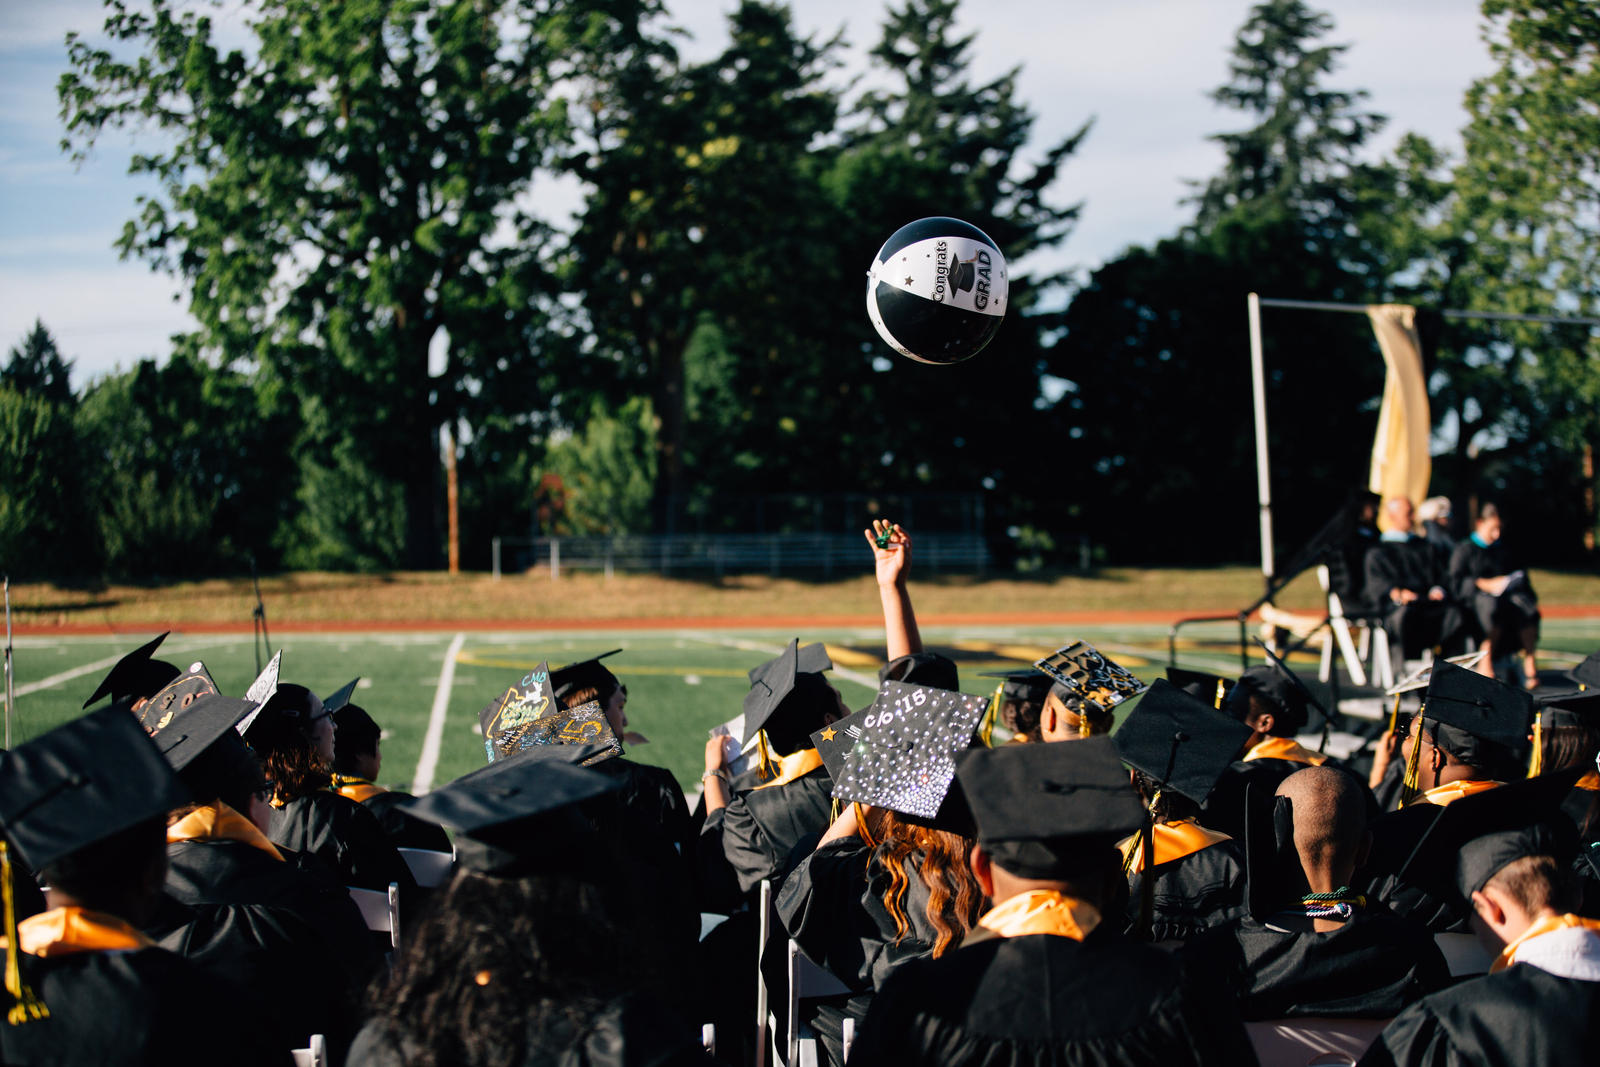 Roosevelt High School class of 2015 celebrates graduation.  Roosevelt is one of 50 High Schools that will receive year-two funding from NSIF, helping students graduate on time and preparing those students for success after high school.